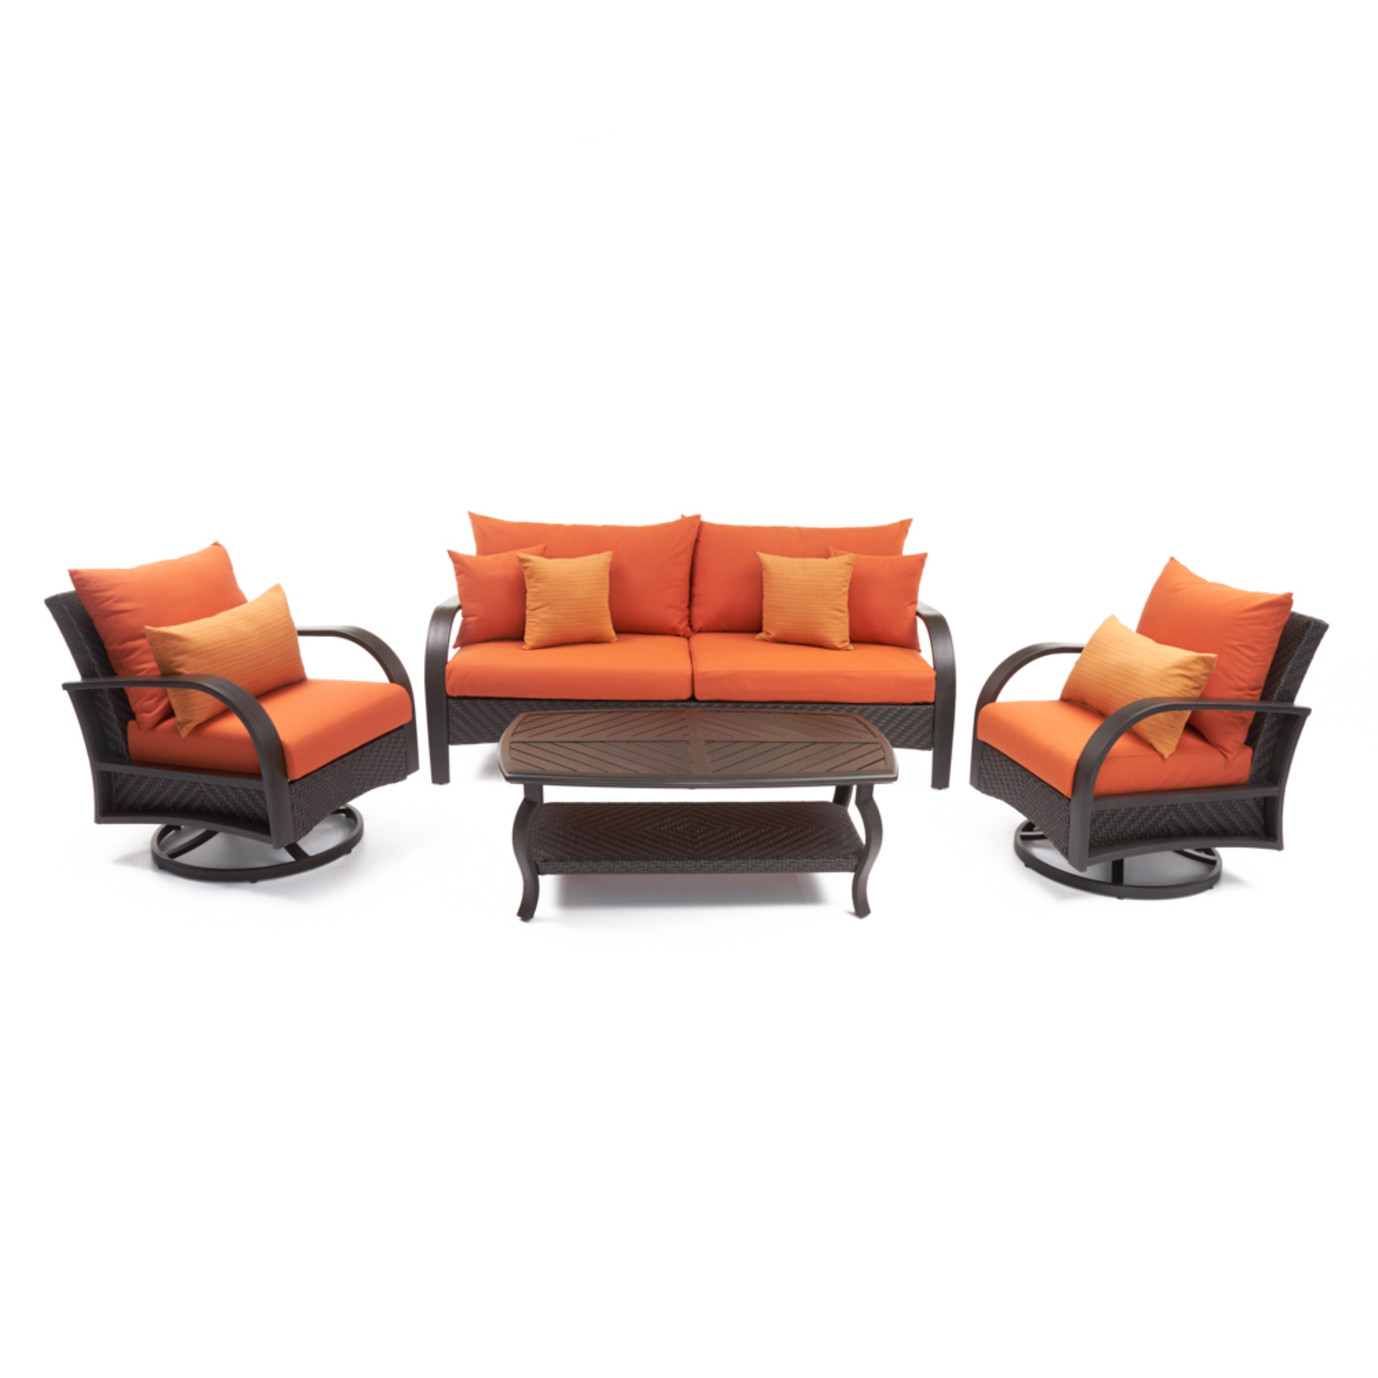 Barcelo™ 4pc Motion Club & Sofa Set - Tikka Orange